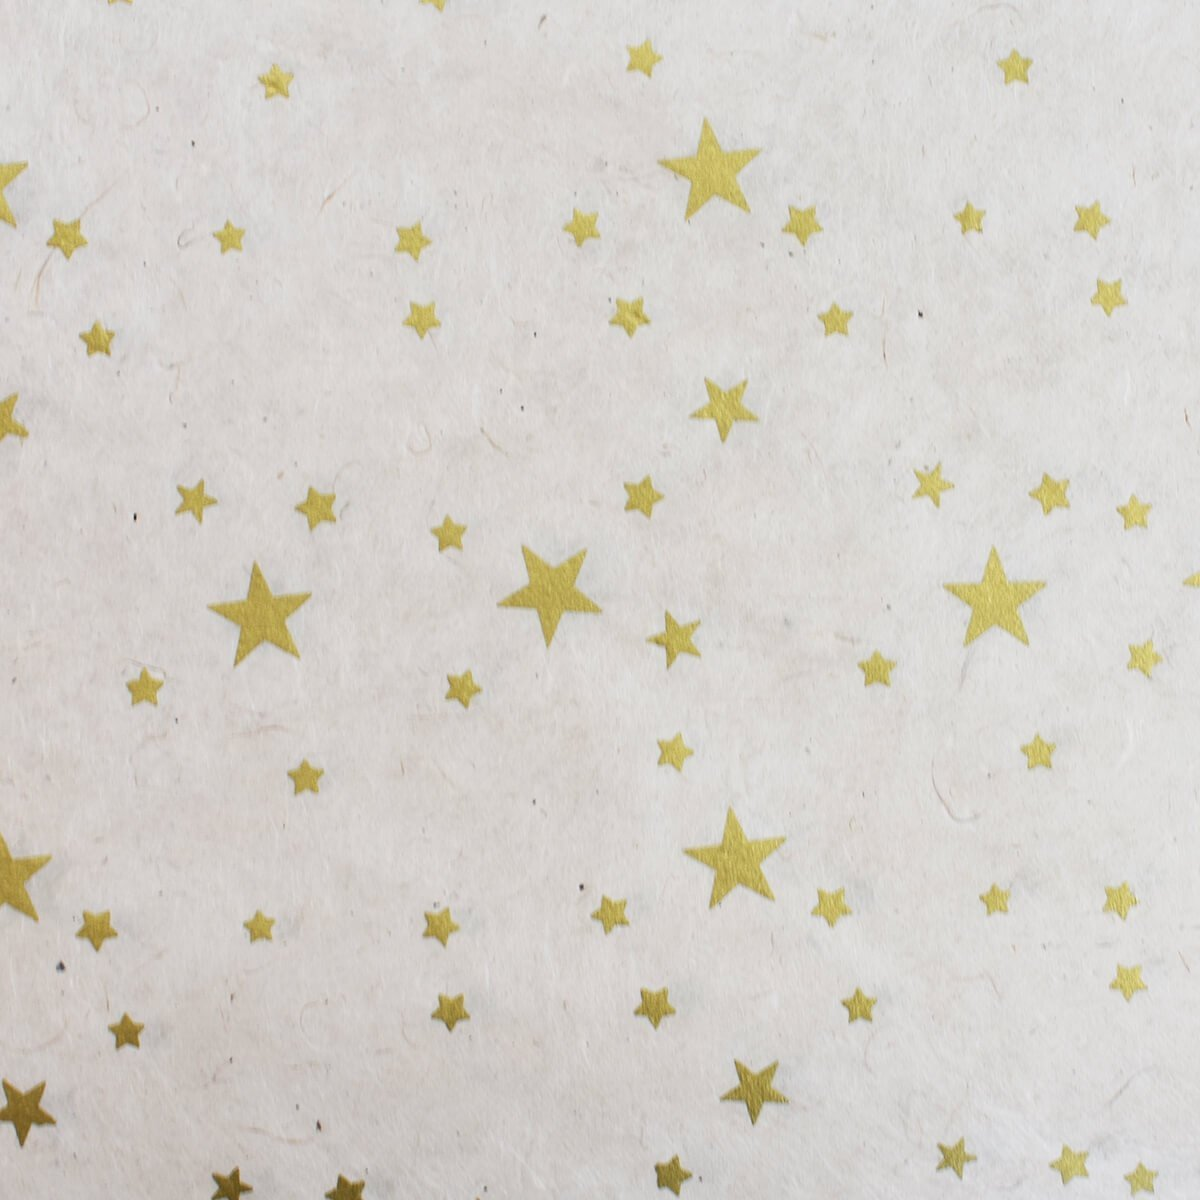 biodegradable wrapping paper lokta stars natural